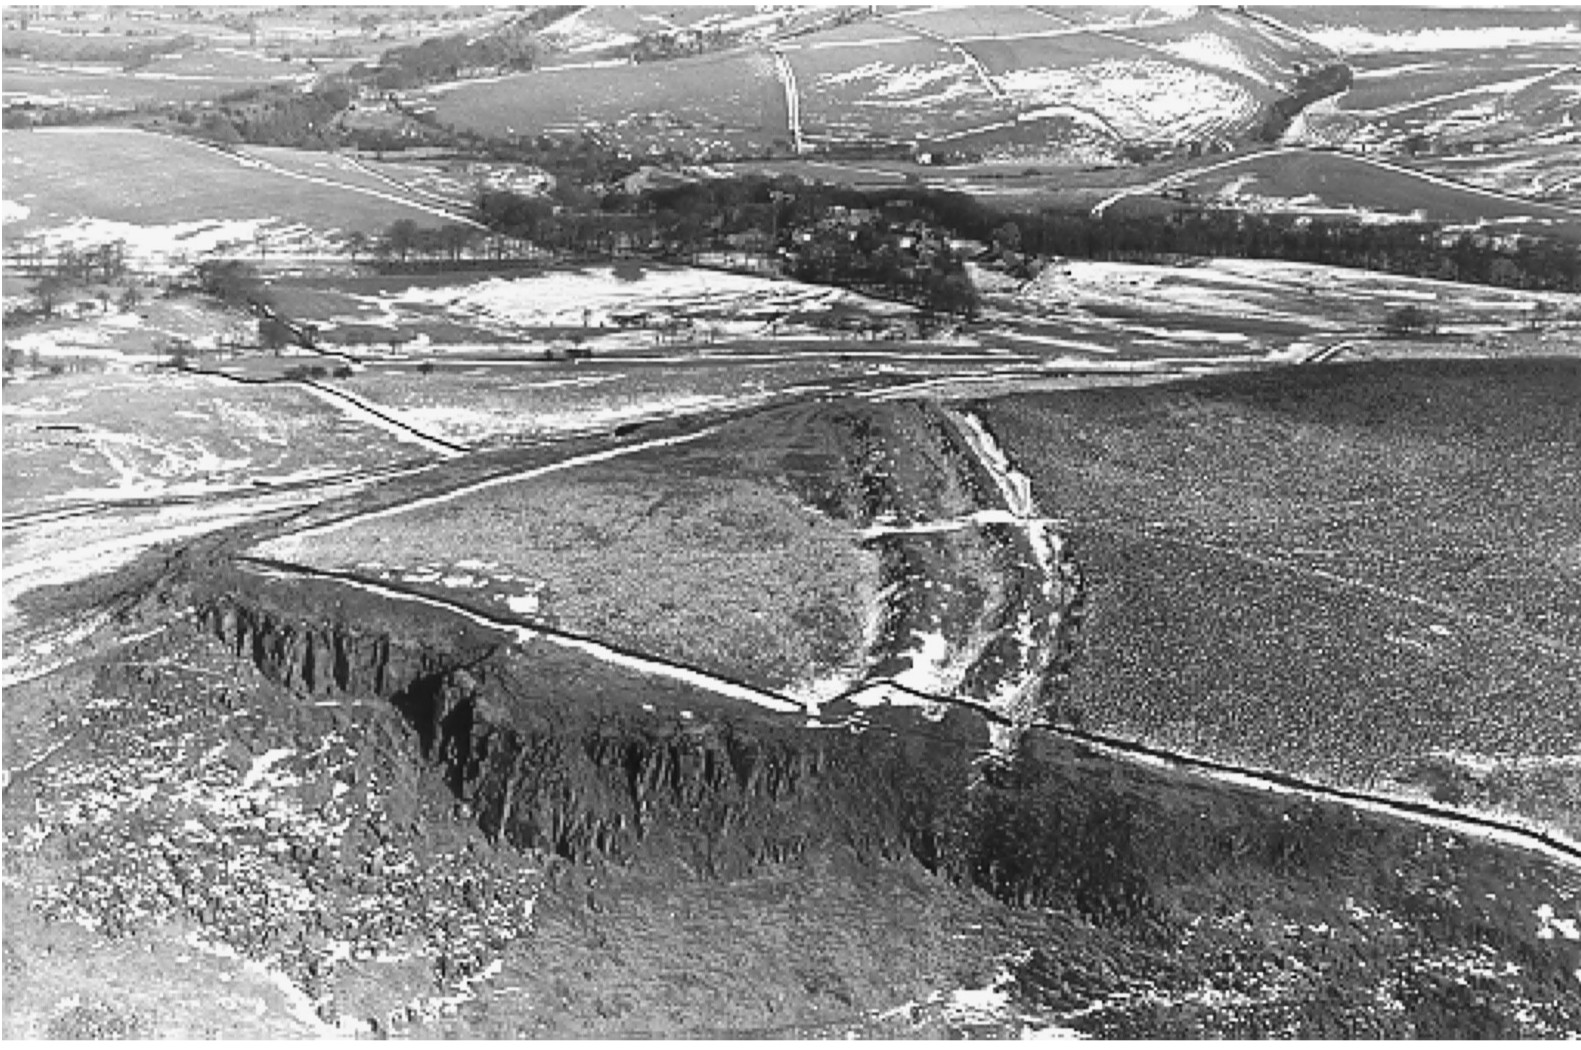 A black and white aerial photo showing a clifftop. There is an enclosed area formed by the cliff edge on one side and a large earthwork on the other. Fields and hills can be seen in the background.